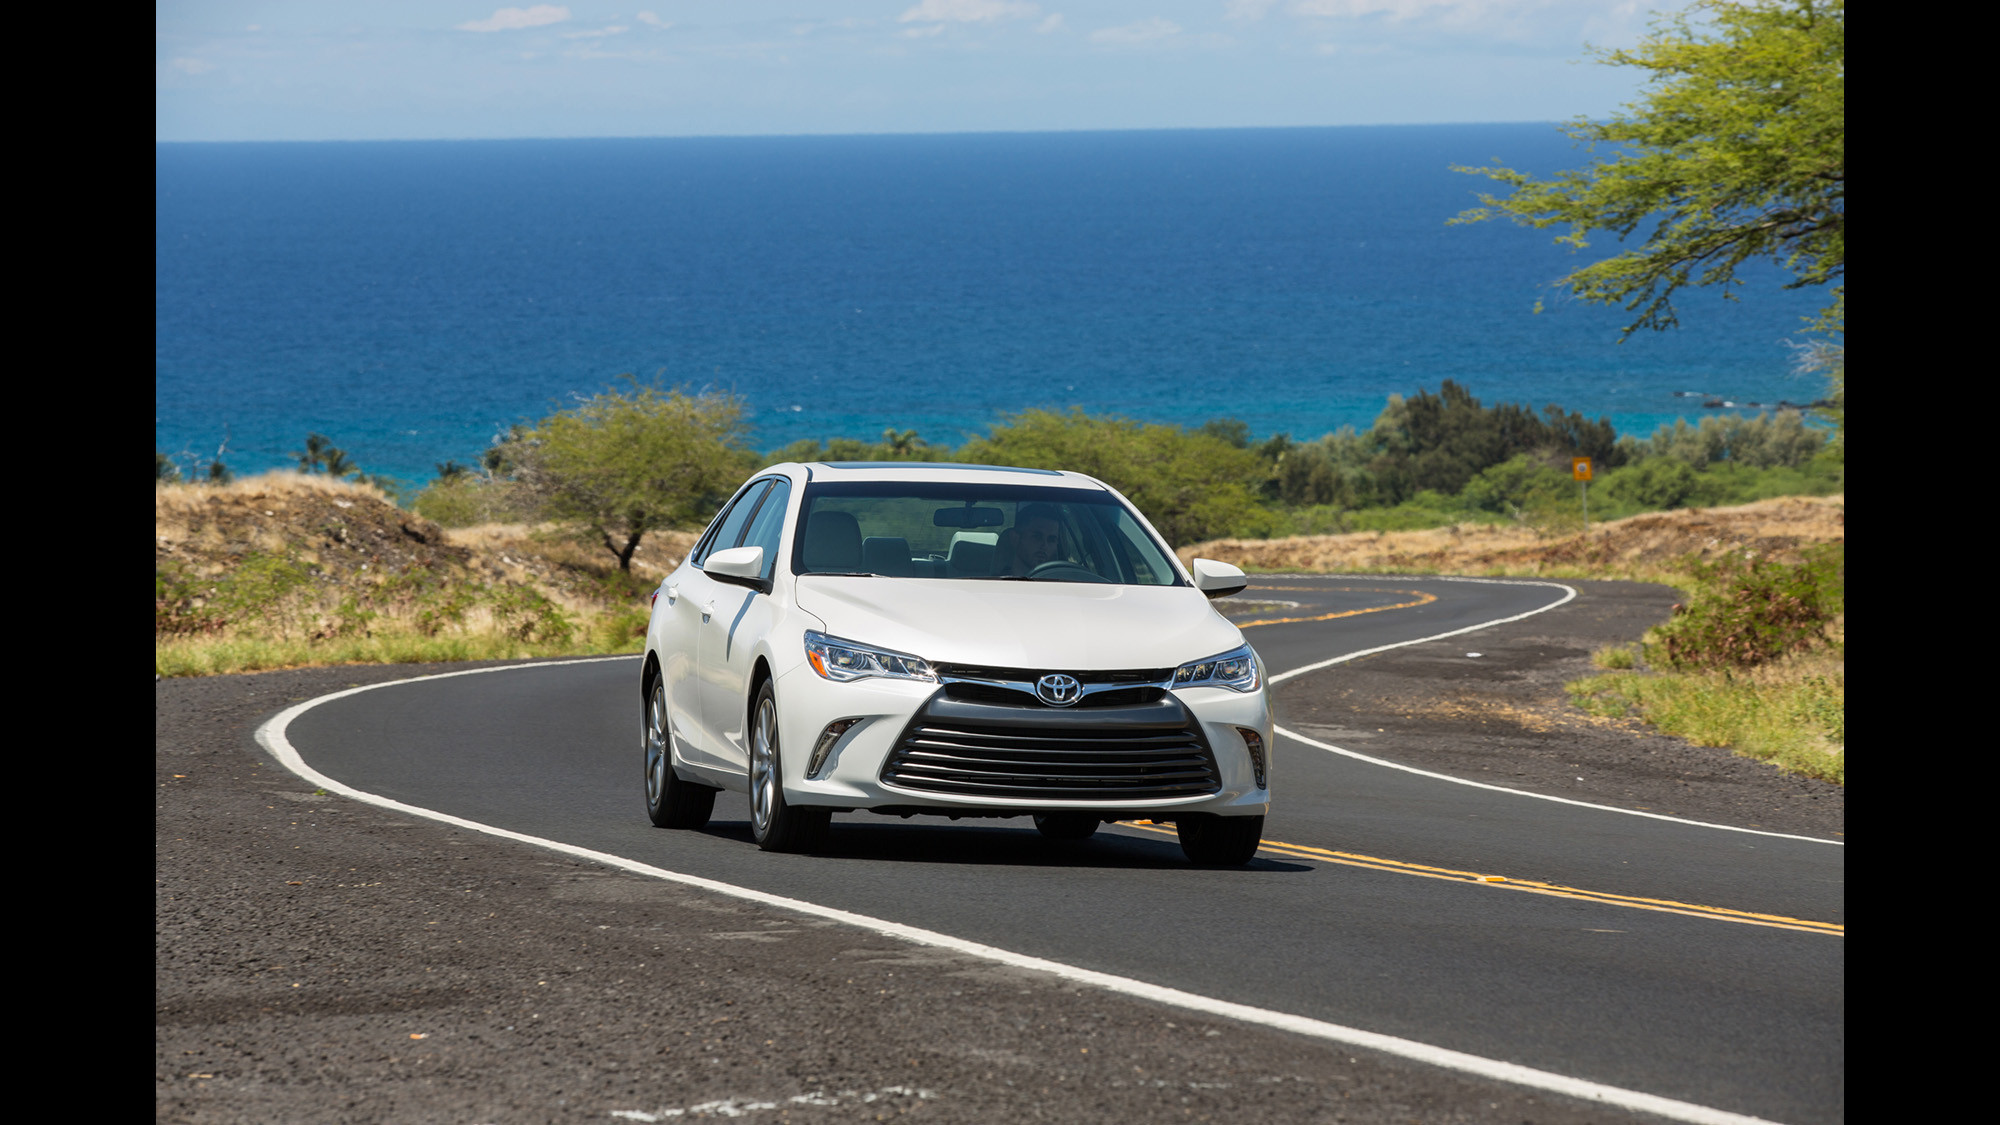 2015 Camry: Toyota redesigns America's best-selling car